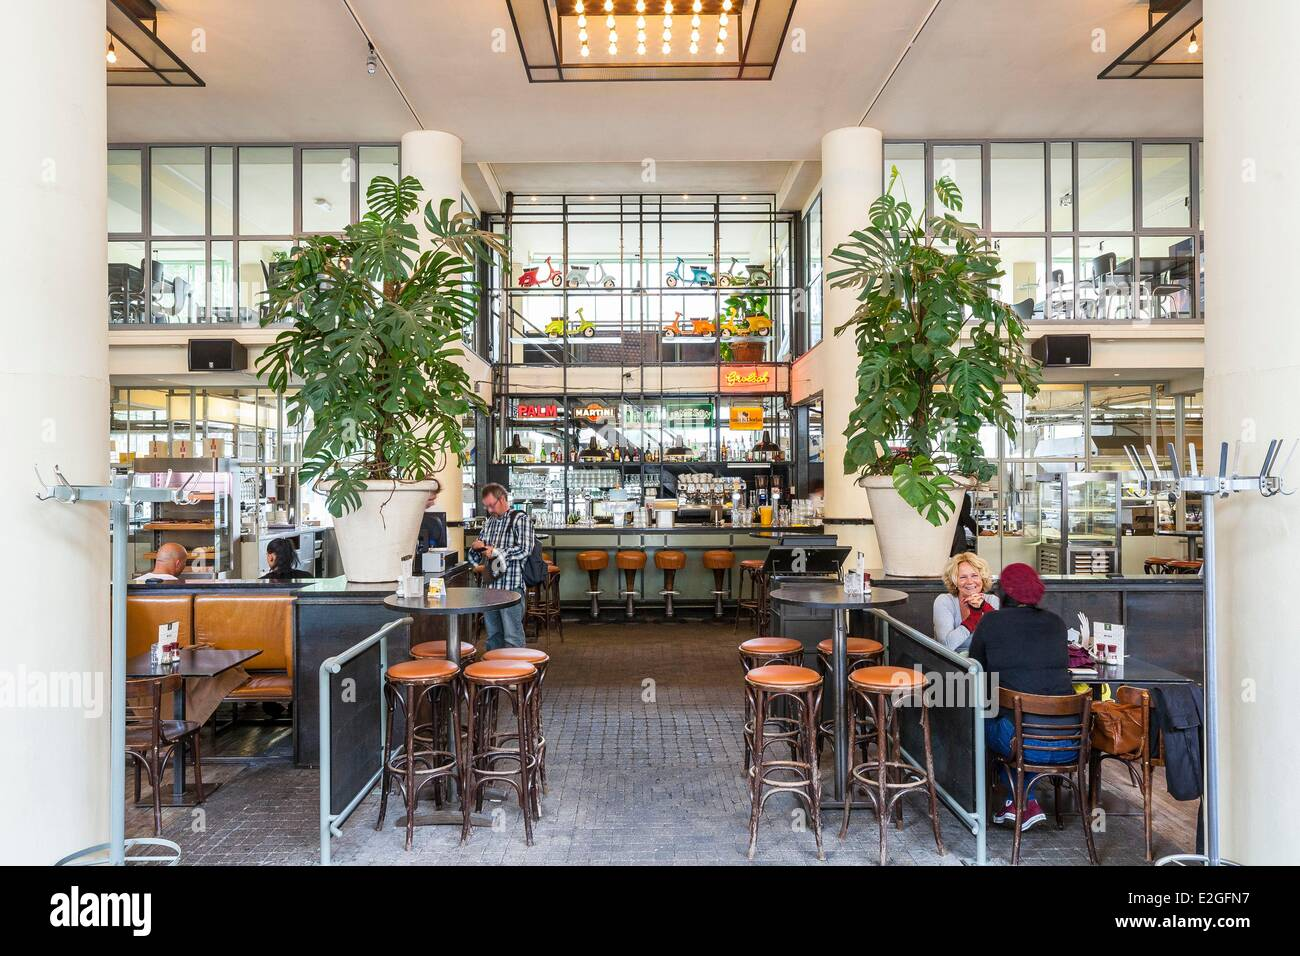 Cafe in the vieux port terra vecchia bastia corsica france stock - Netherlands South Holland Rotterdam Coffee Dudok Brasserie Opened In 1991 In A Building Designed In 1945